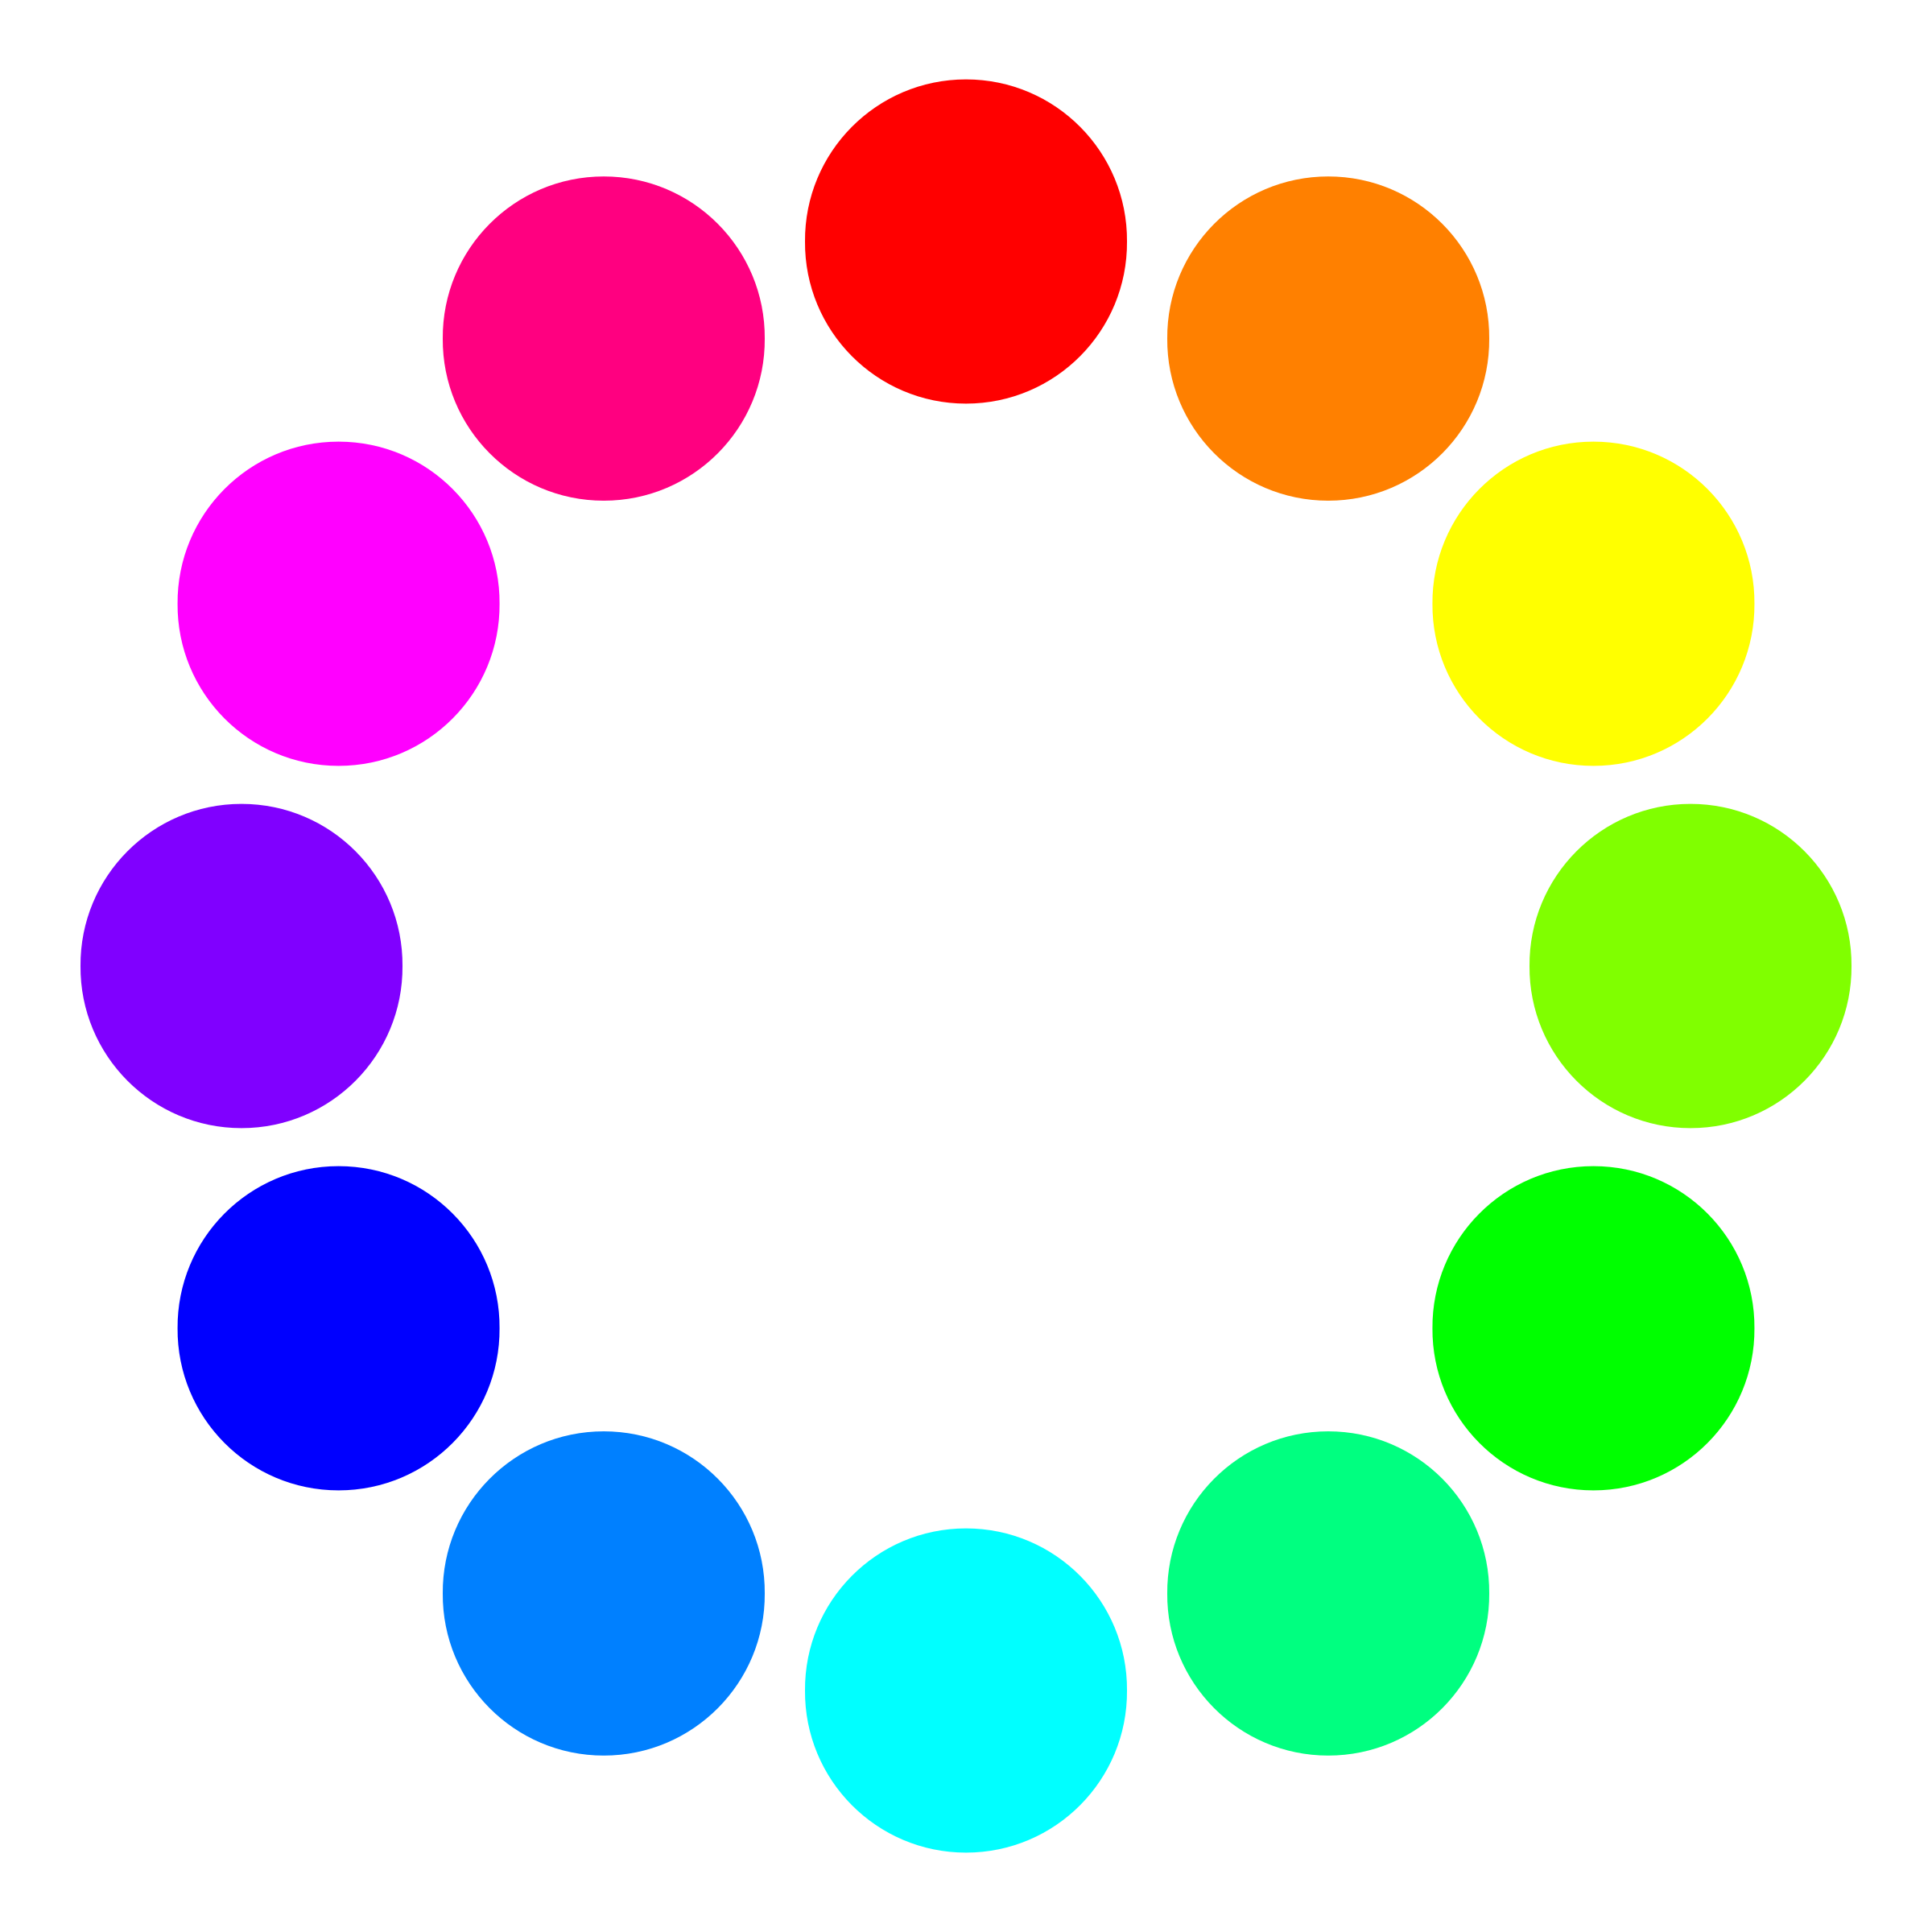 Coloured circles photo